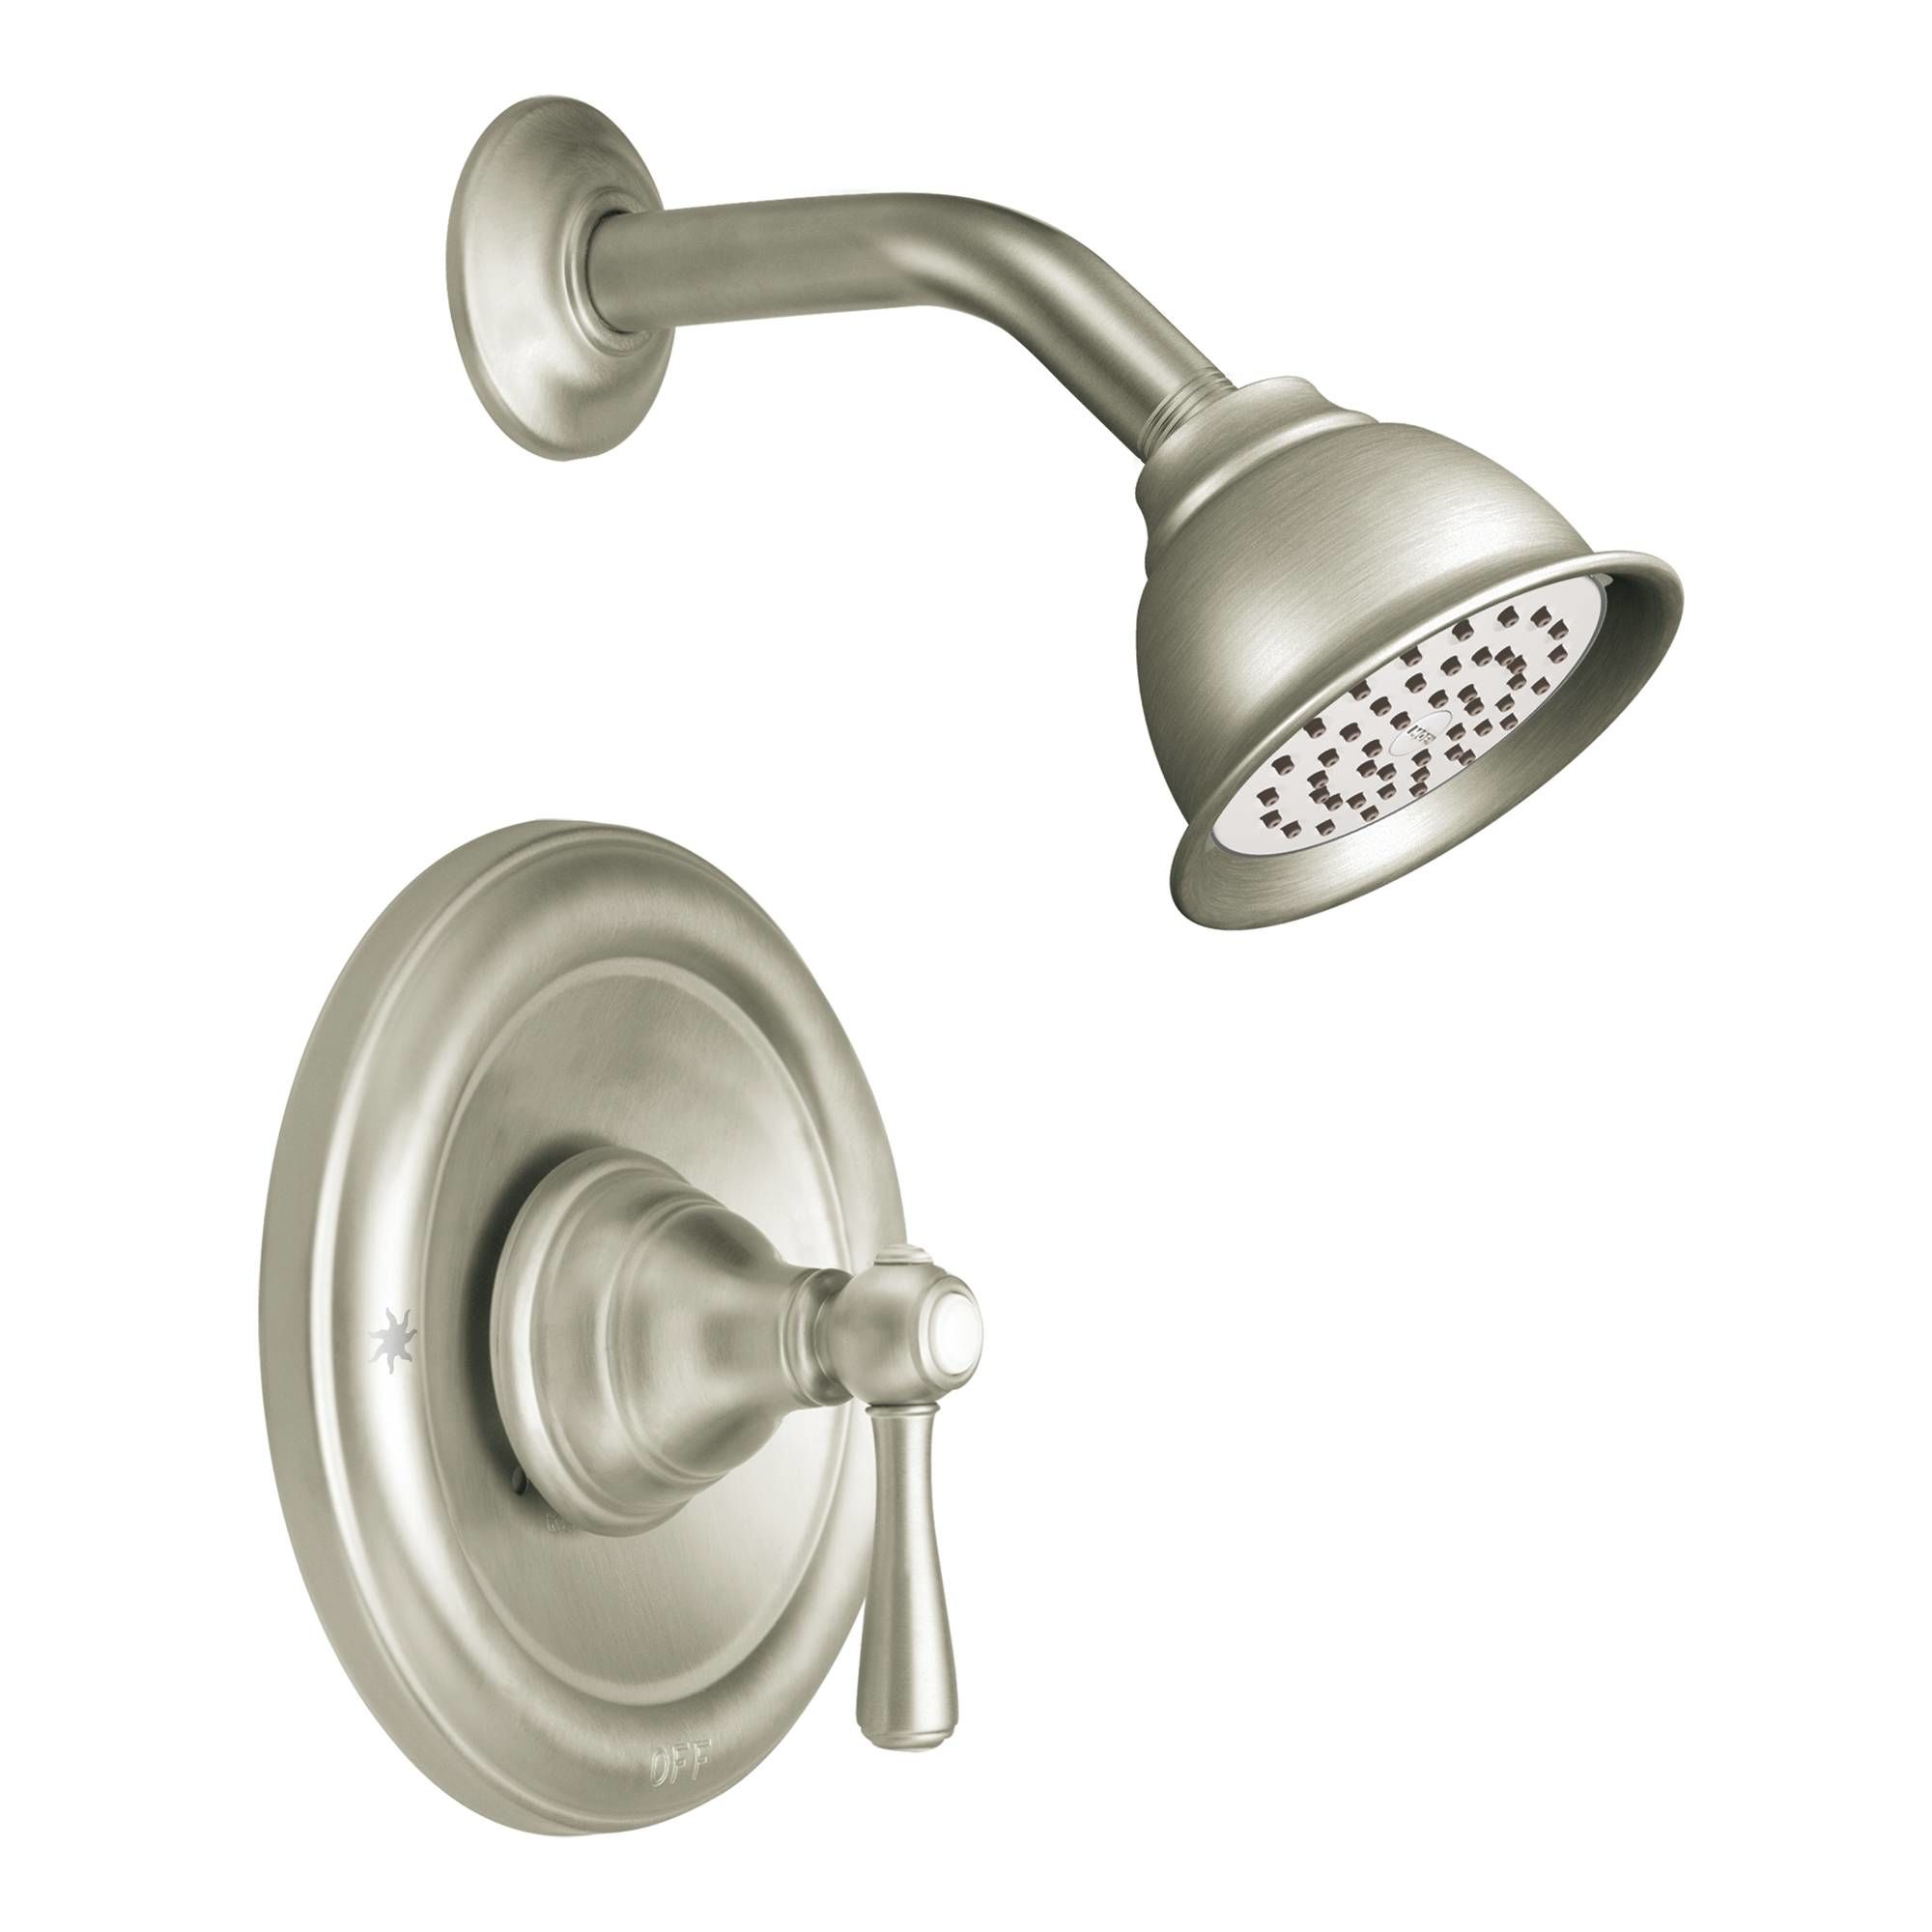 waterhill the moen rain pressure valves diverter from balanced and faucet iron hand com single trim in with wrought chrome included collection handle system shower